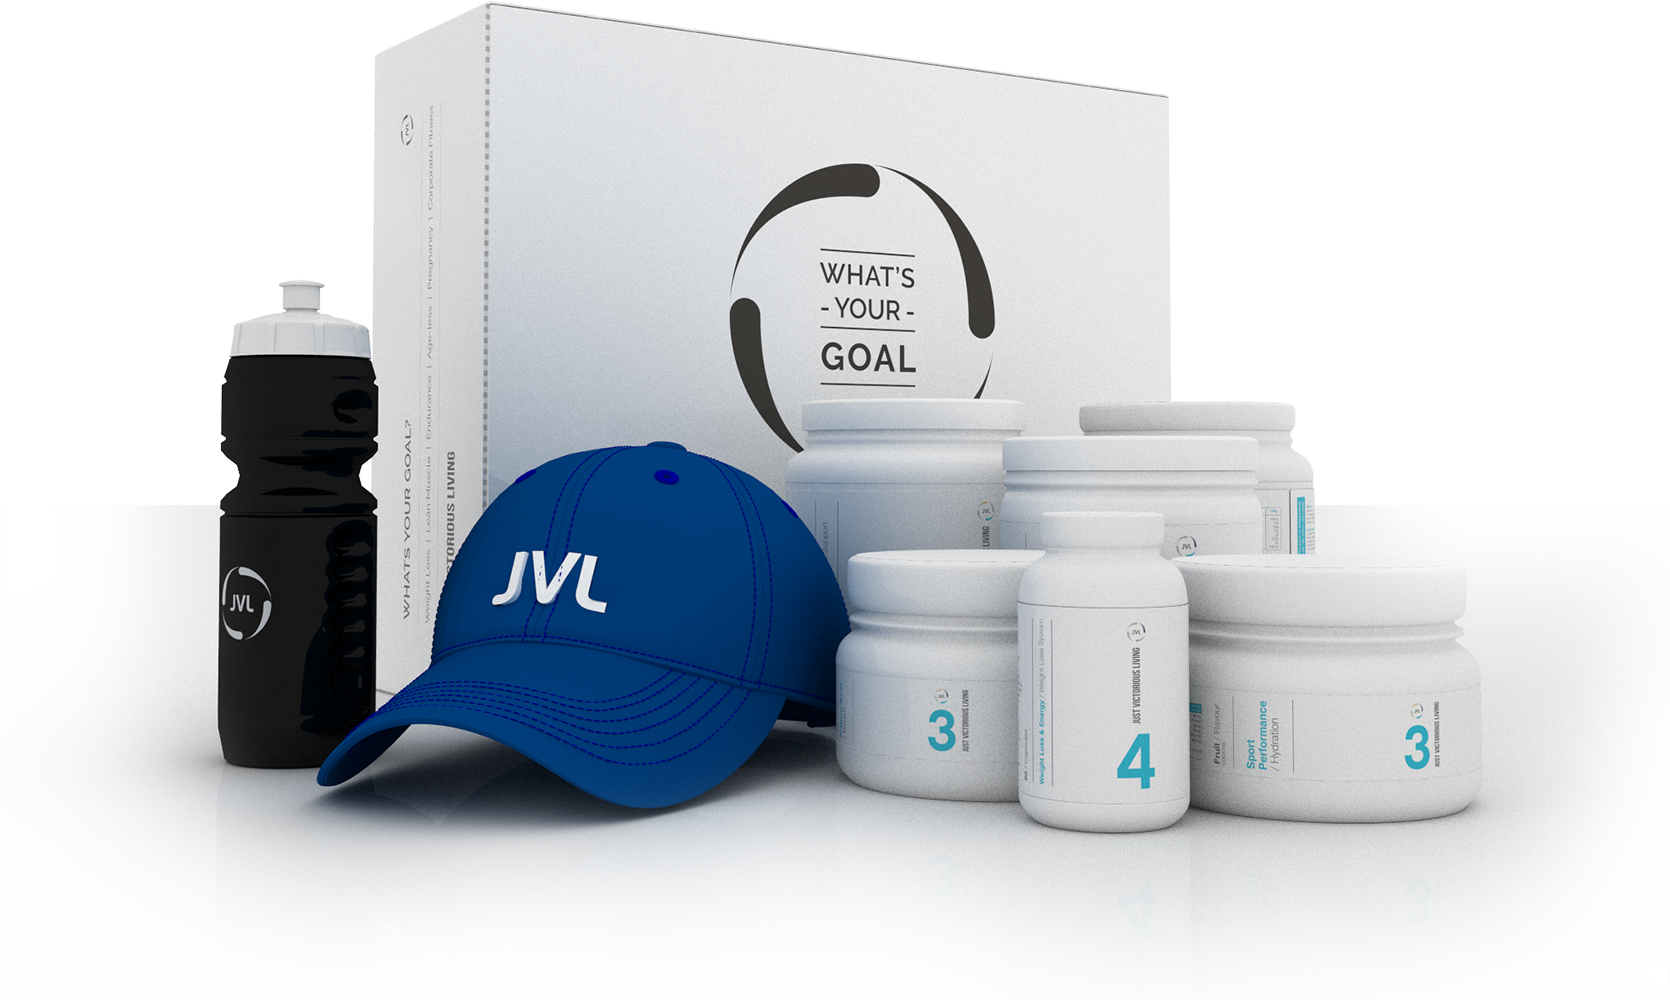 JVL Products